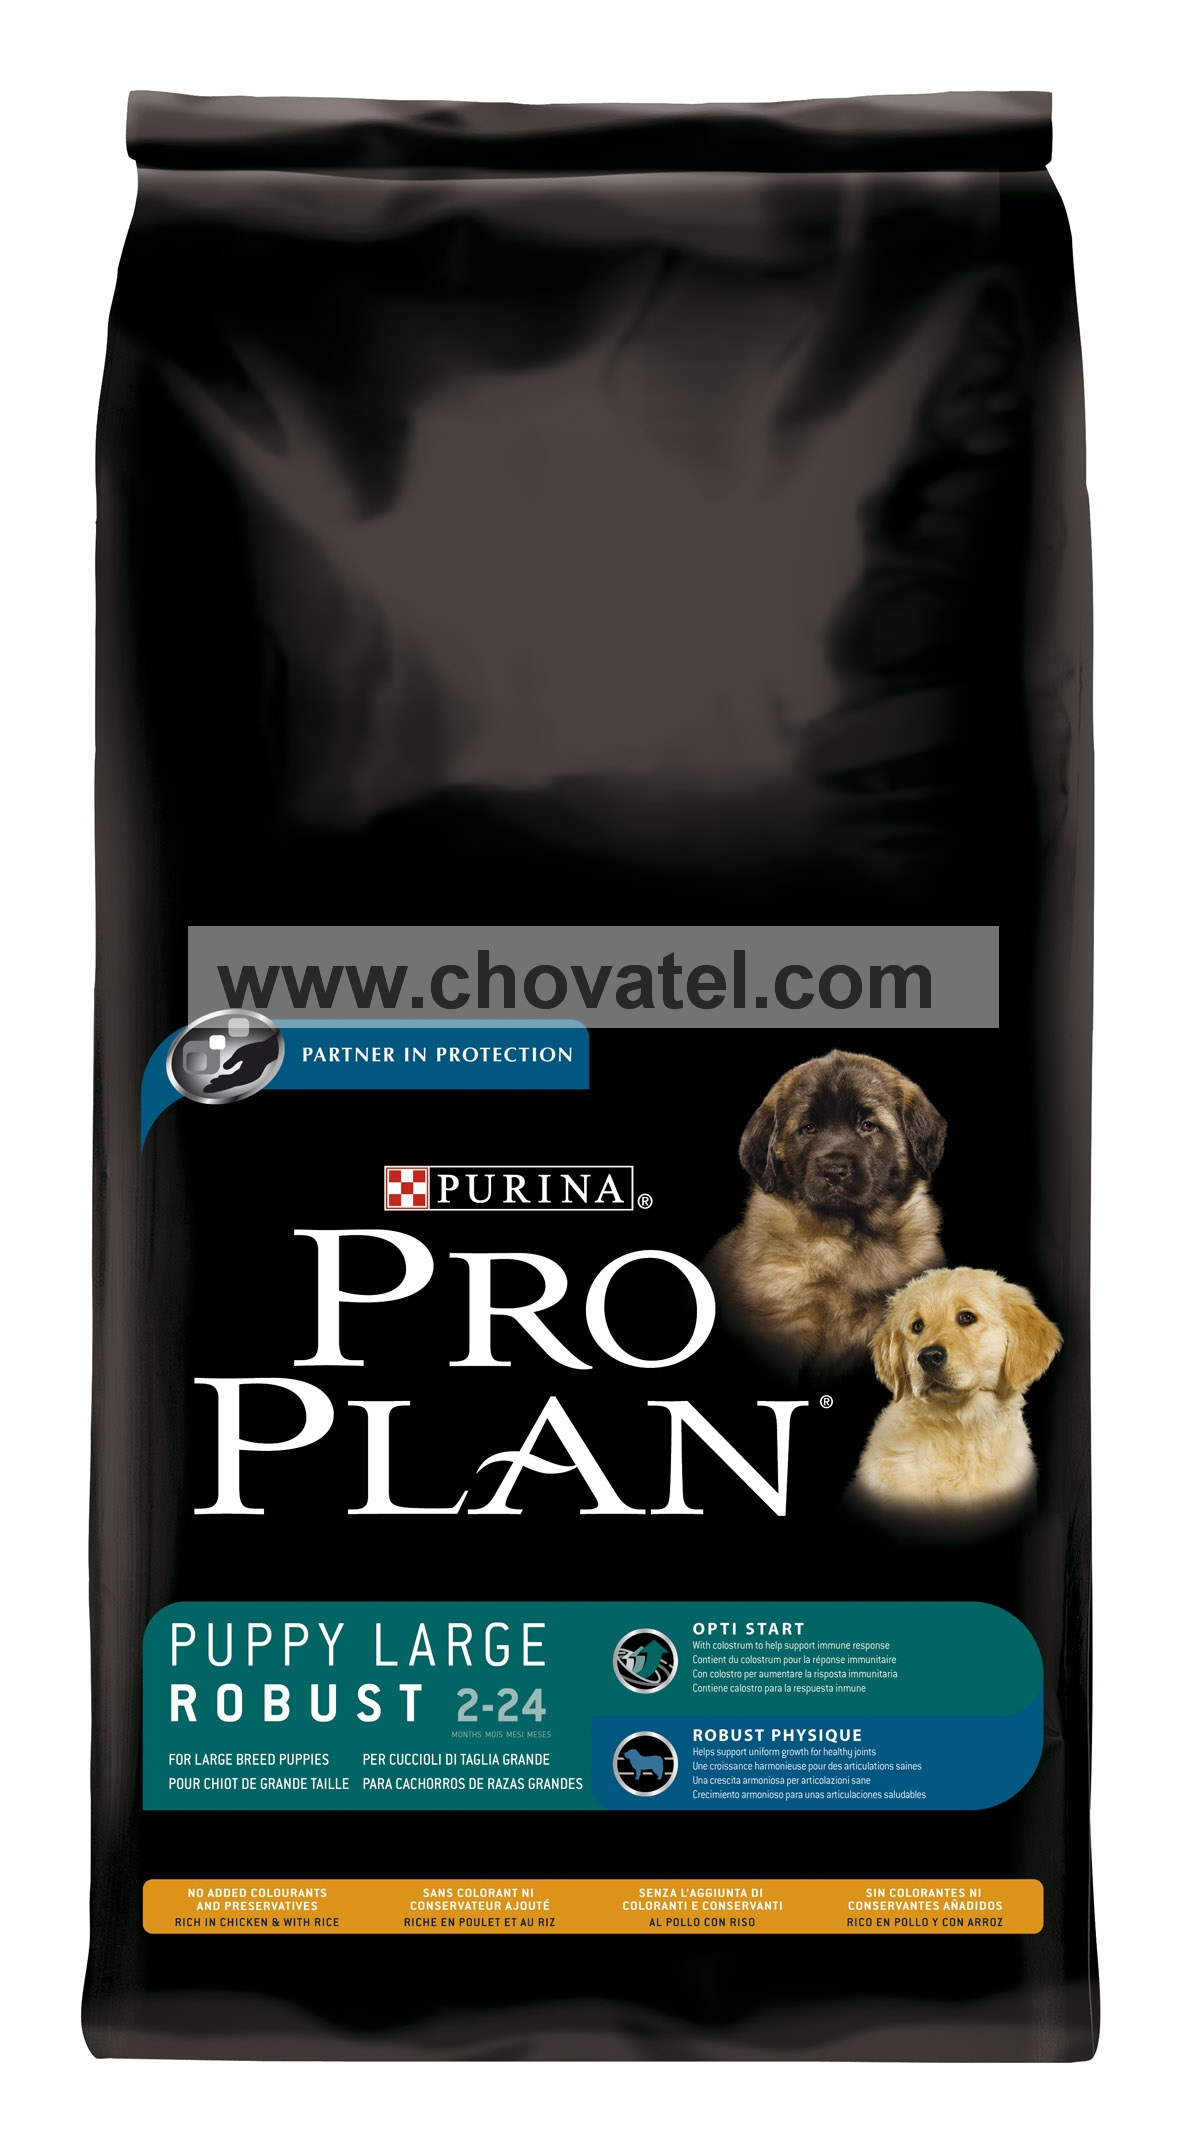 Purina Pro Plan Puppy Large Robust Chicken+Rice 14kg